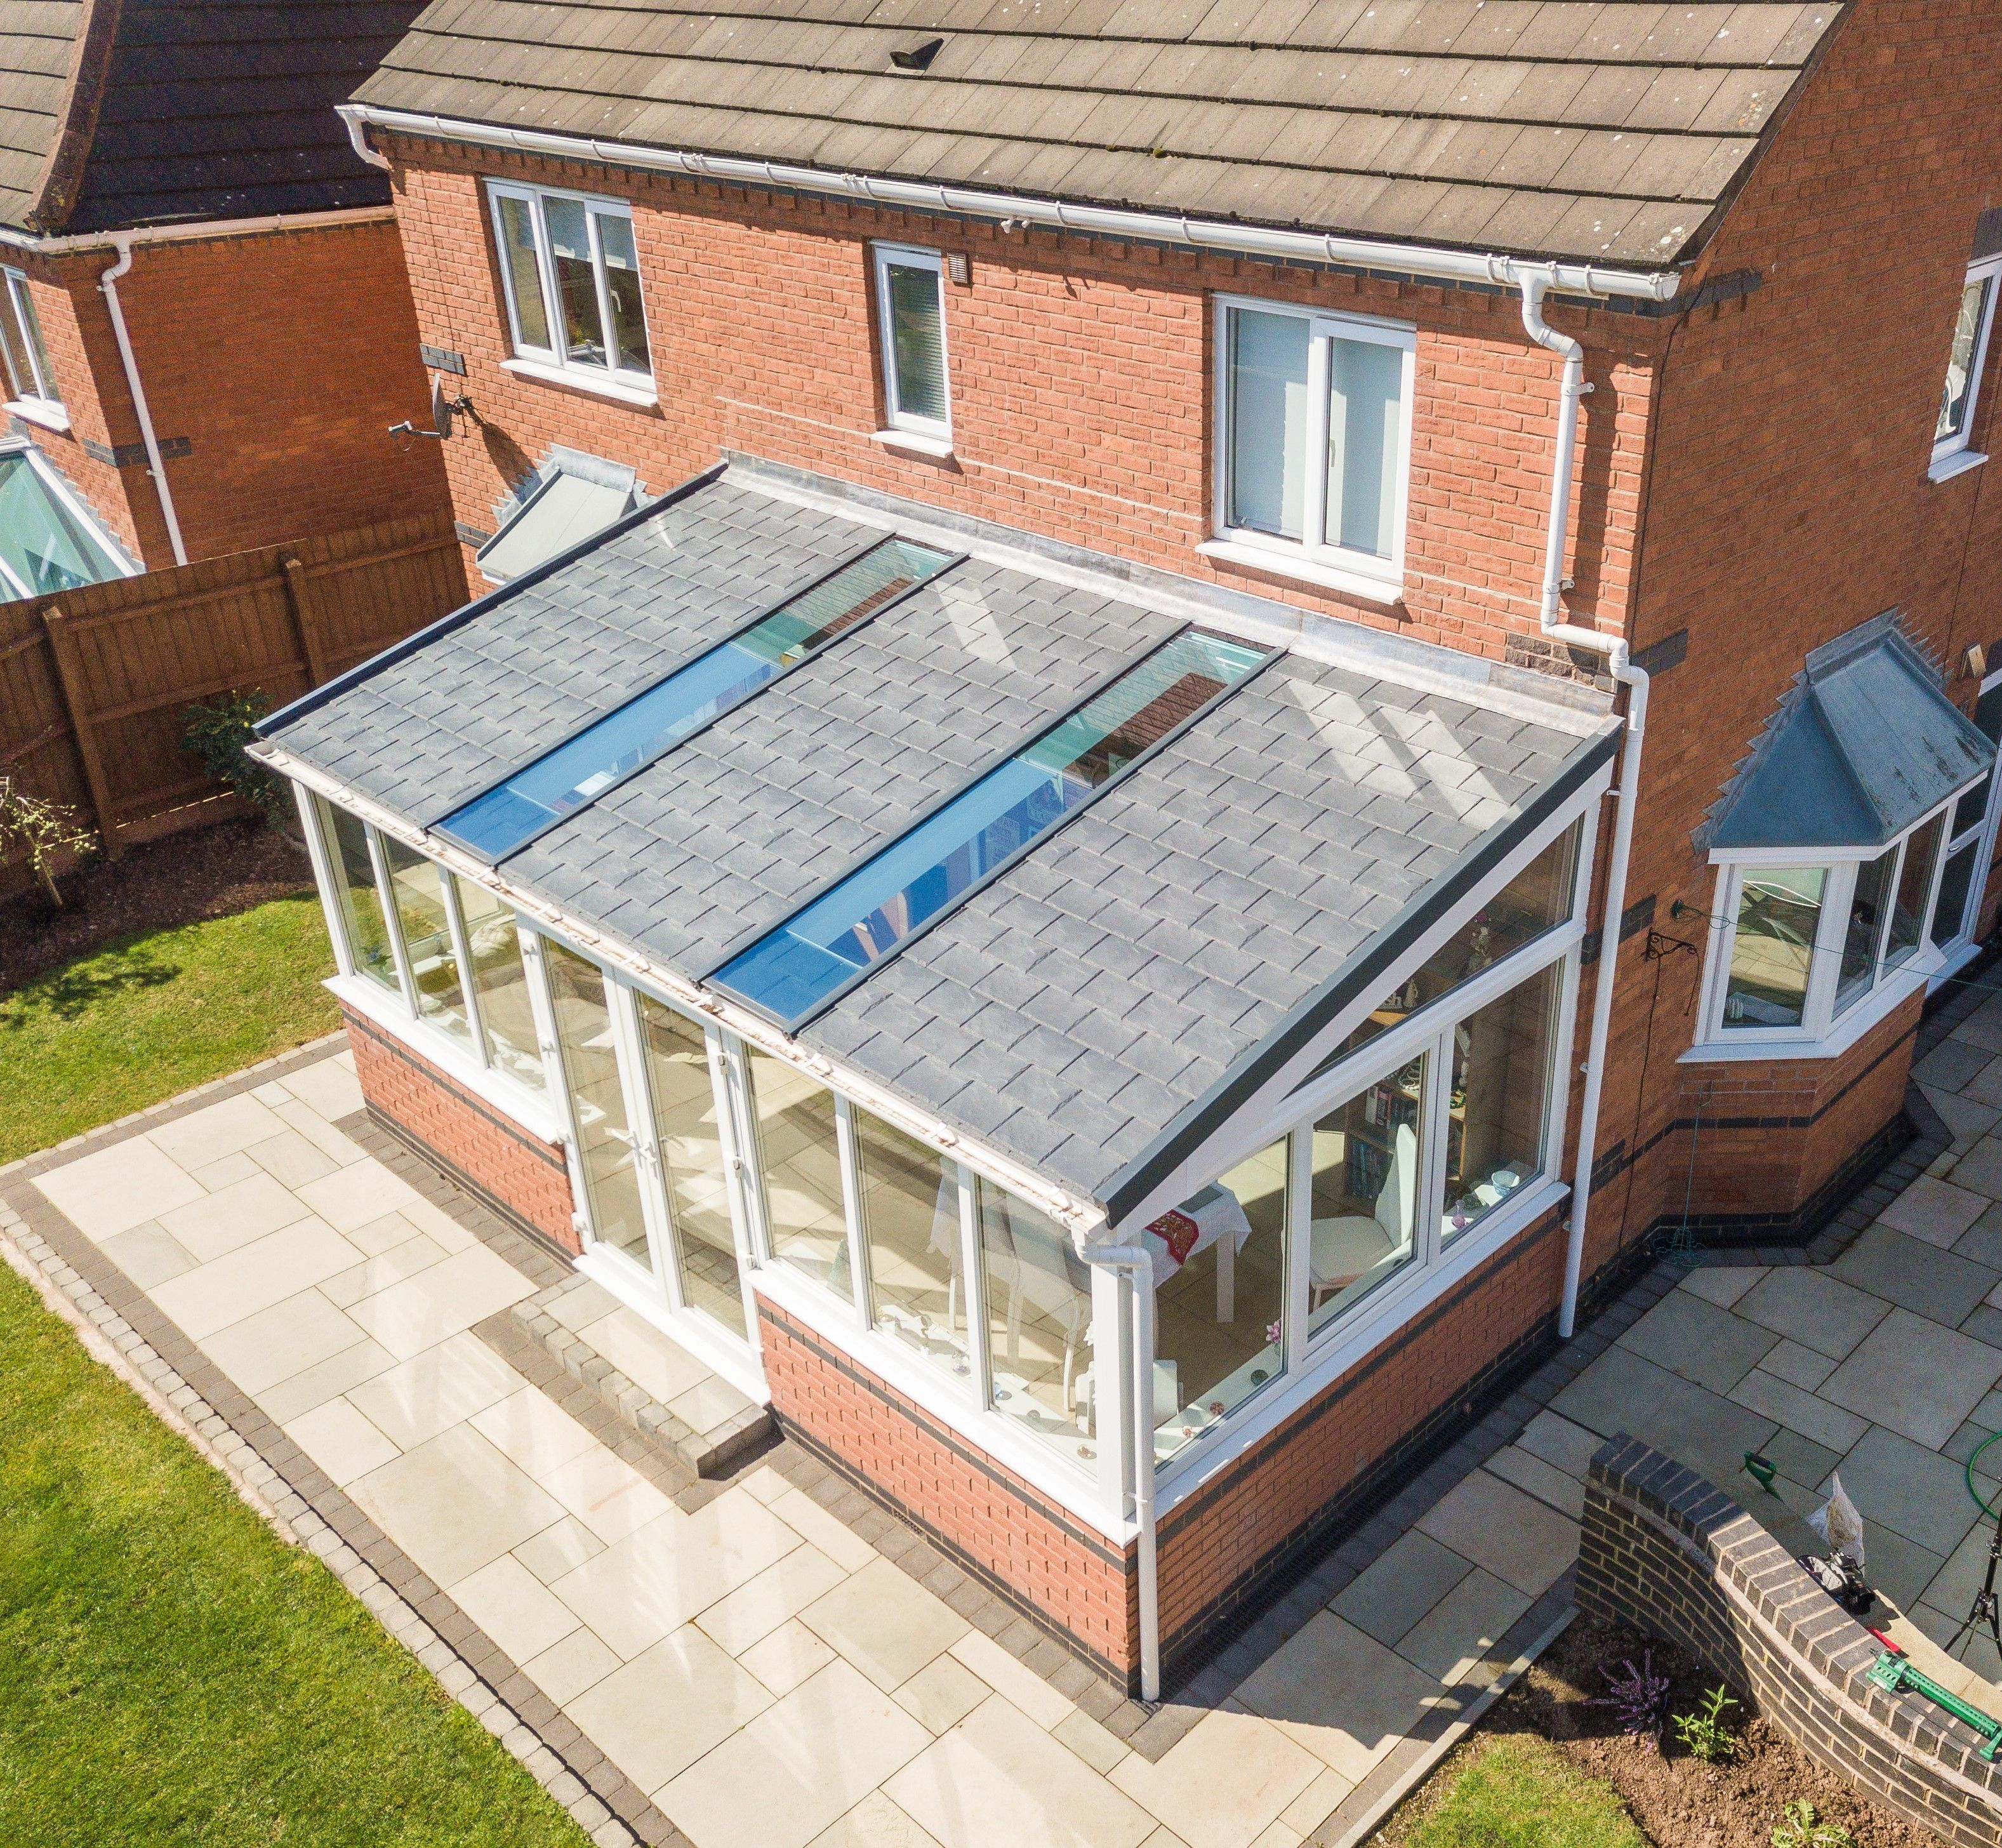 Tiled Conservatory Roof Ultraroof Conservatory Uk Tiled Conservatory Roof Garden Room Conservatory Roof